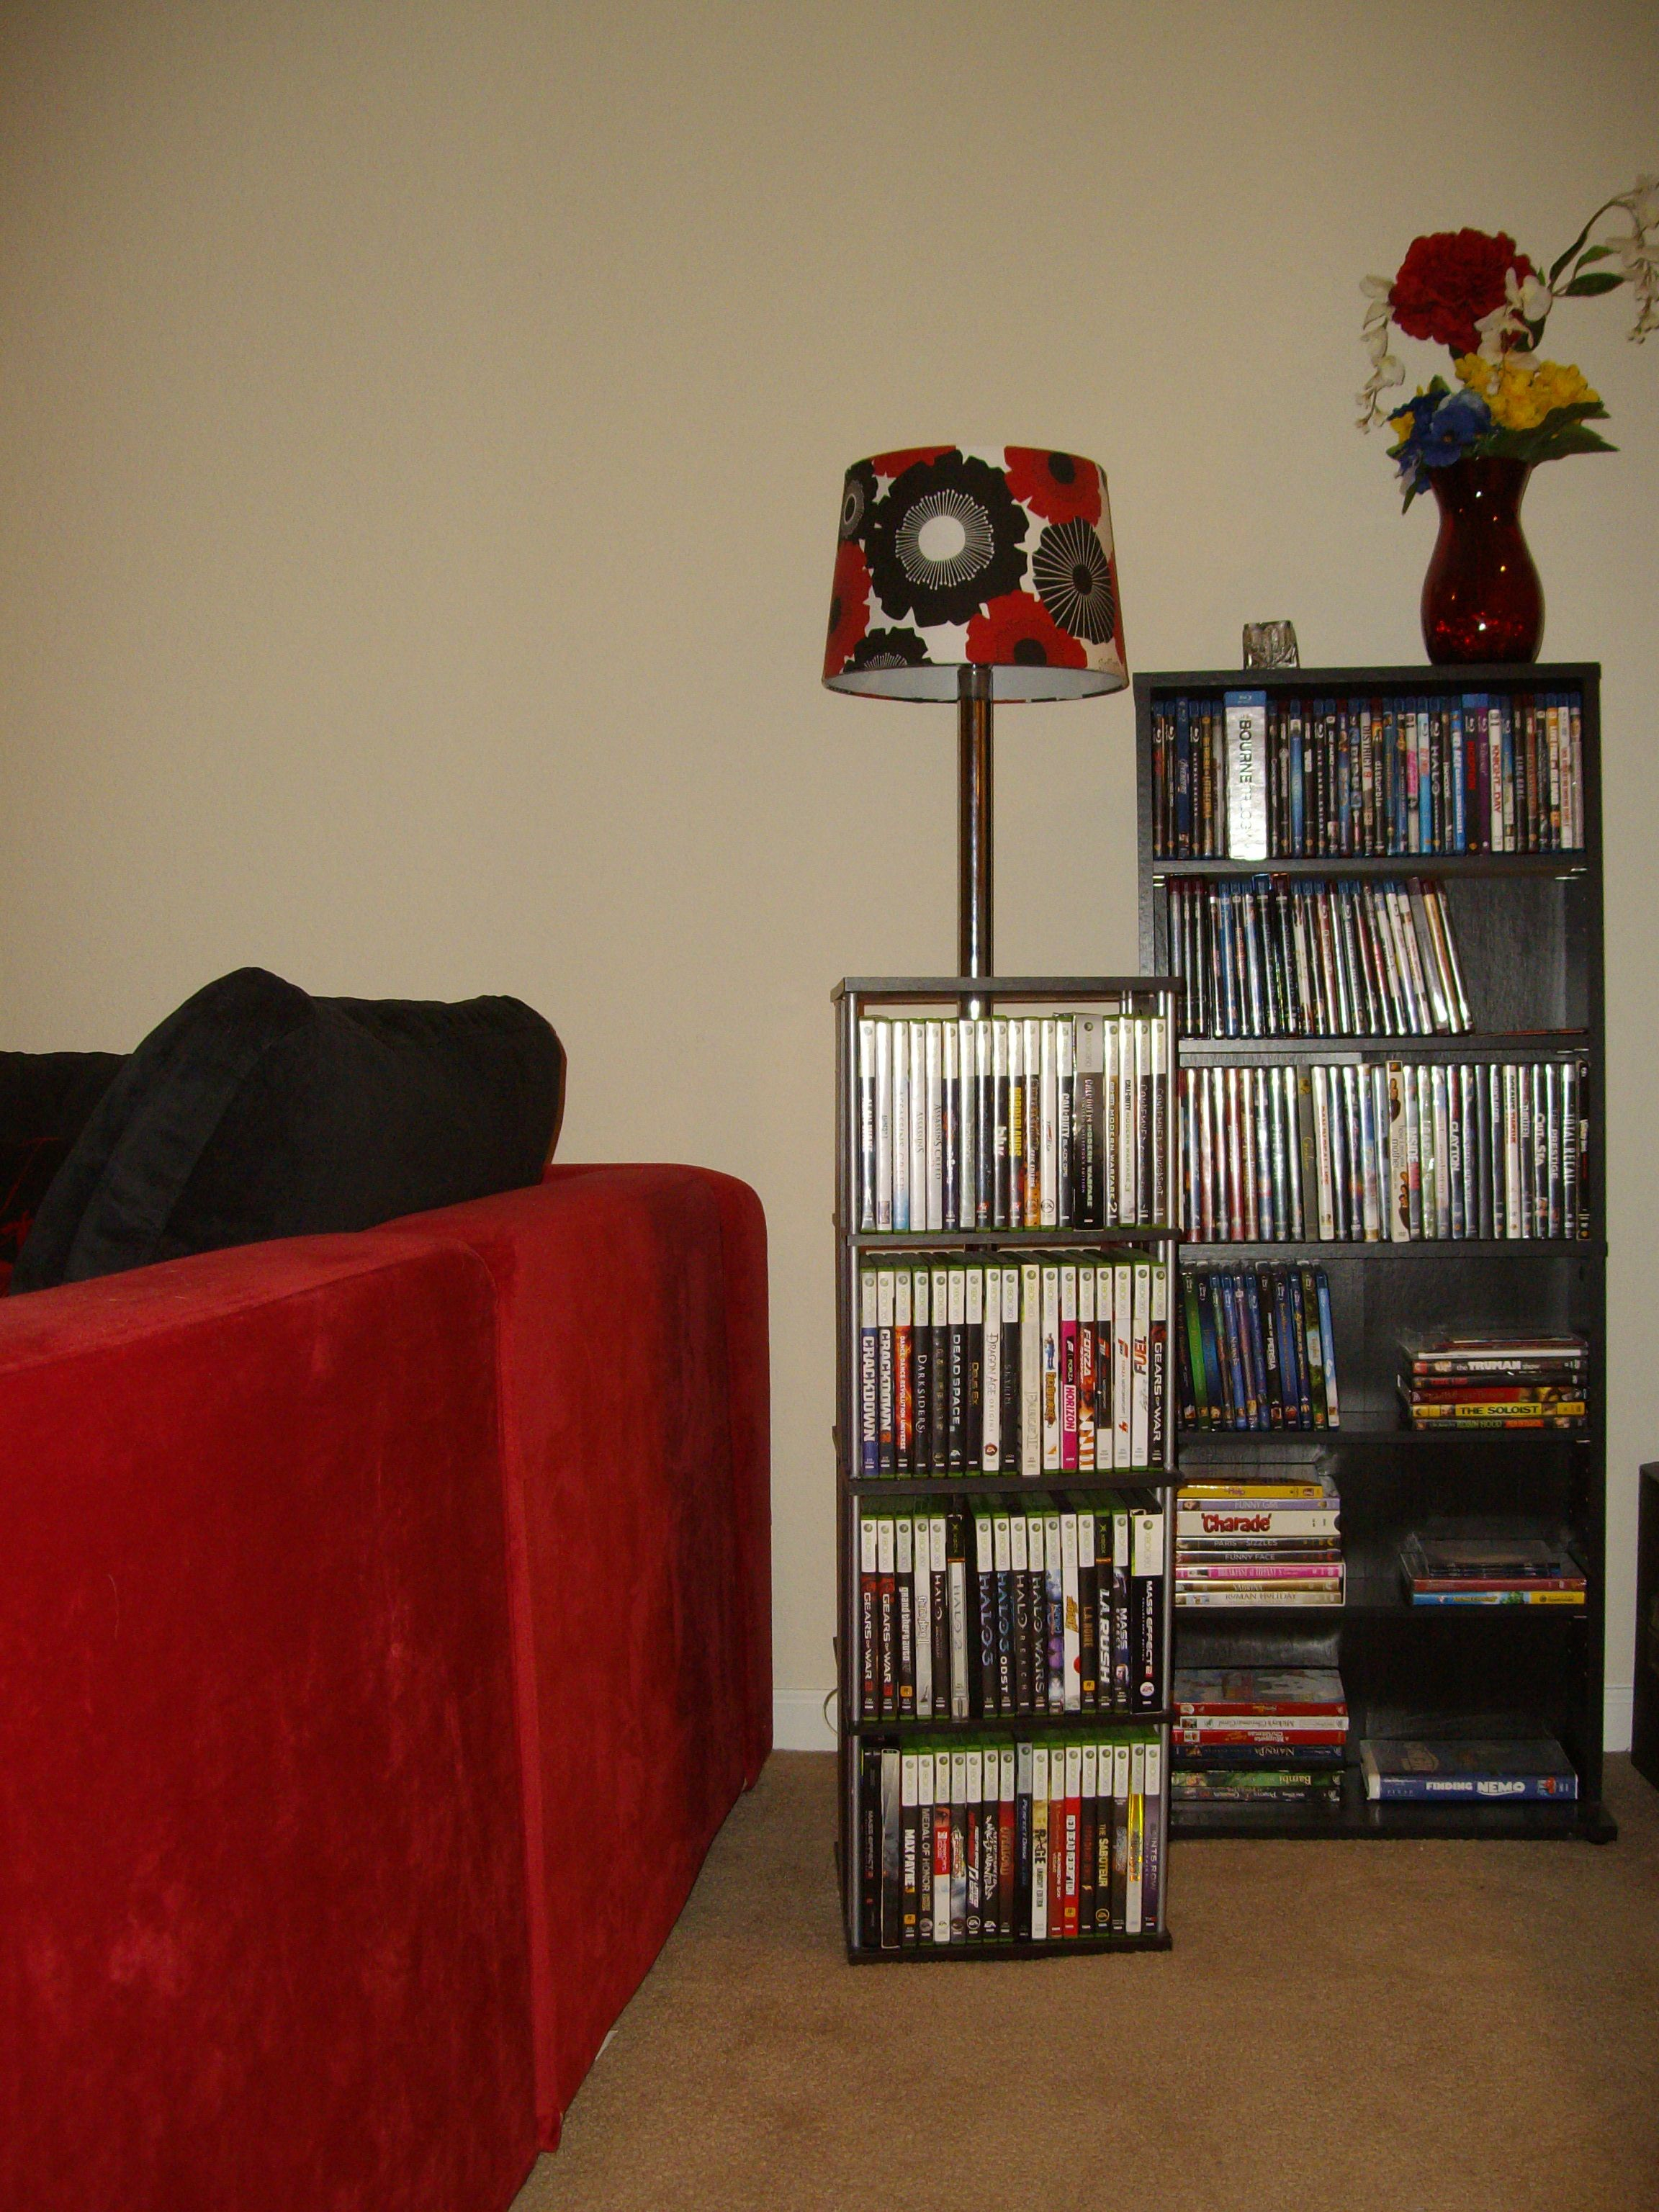 Atlantic Typhoon DVD Or Blu Ray Or Games Spinner, Sauders Beginnings  Multimedia Storage Tower